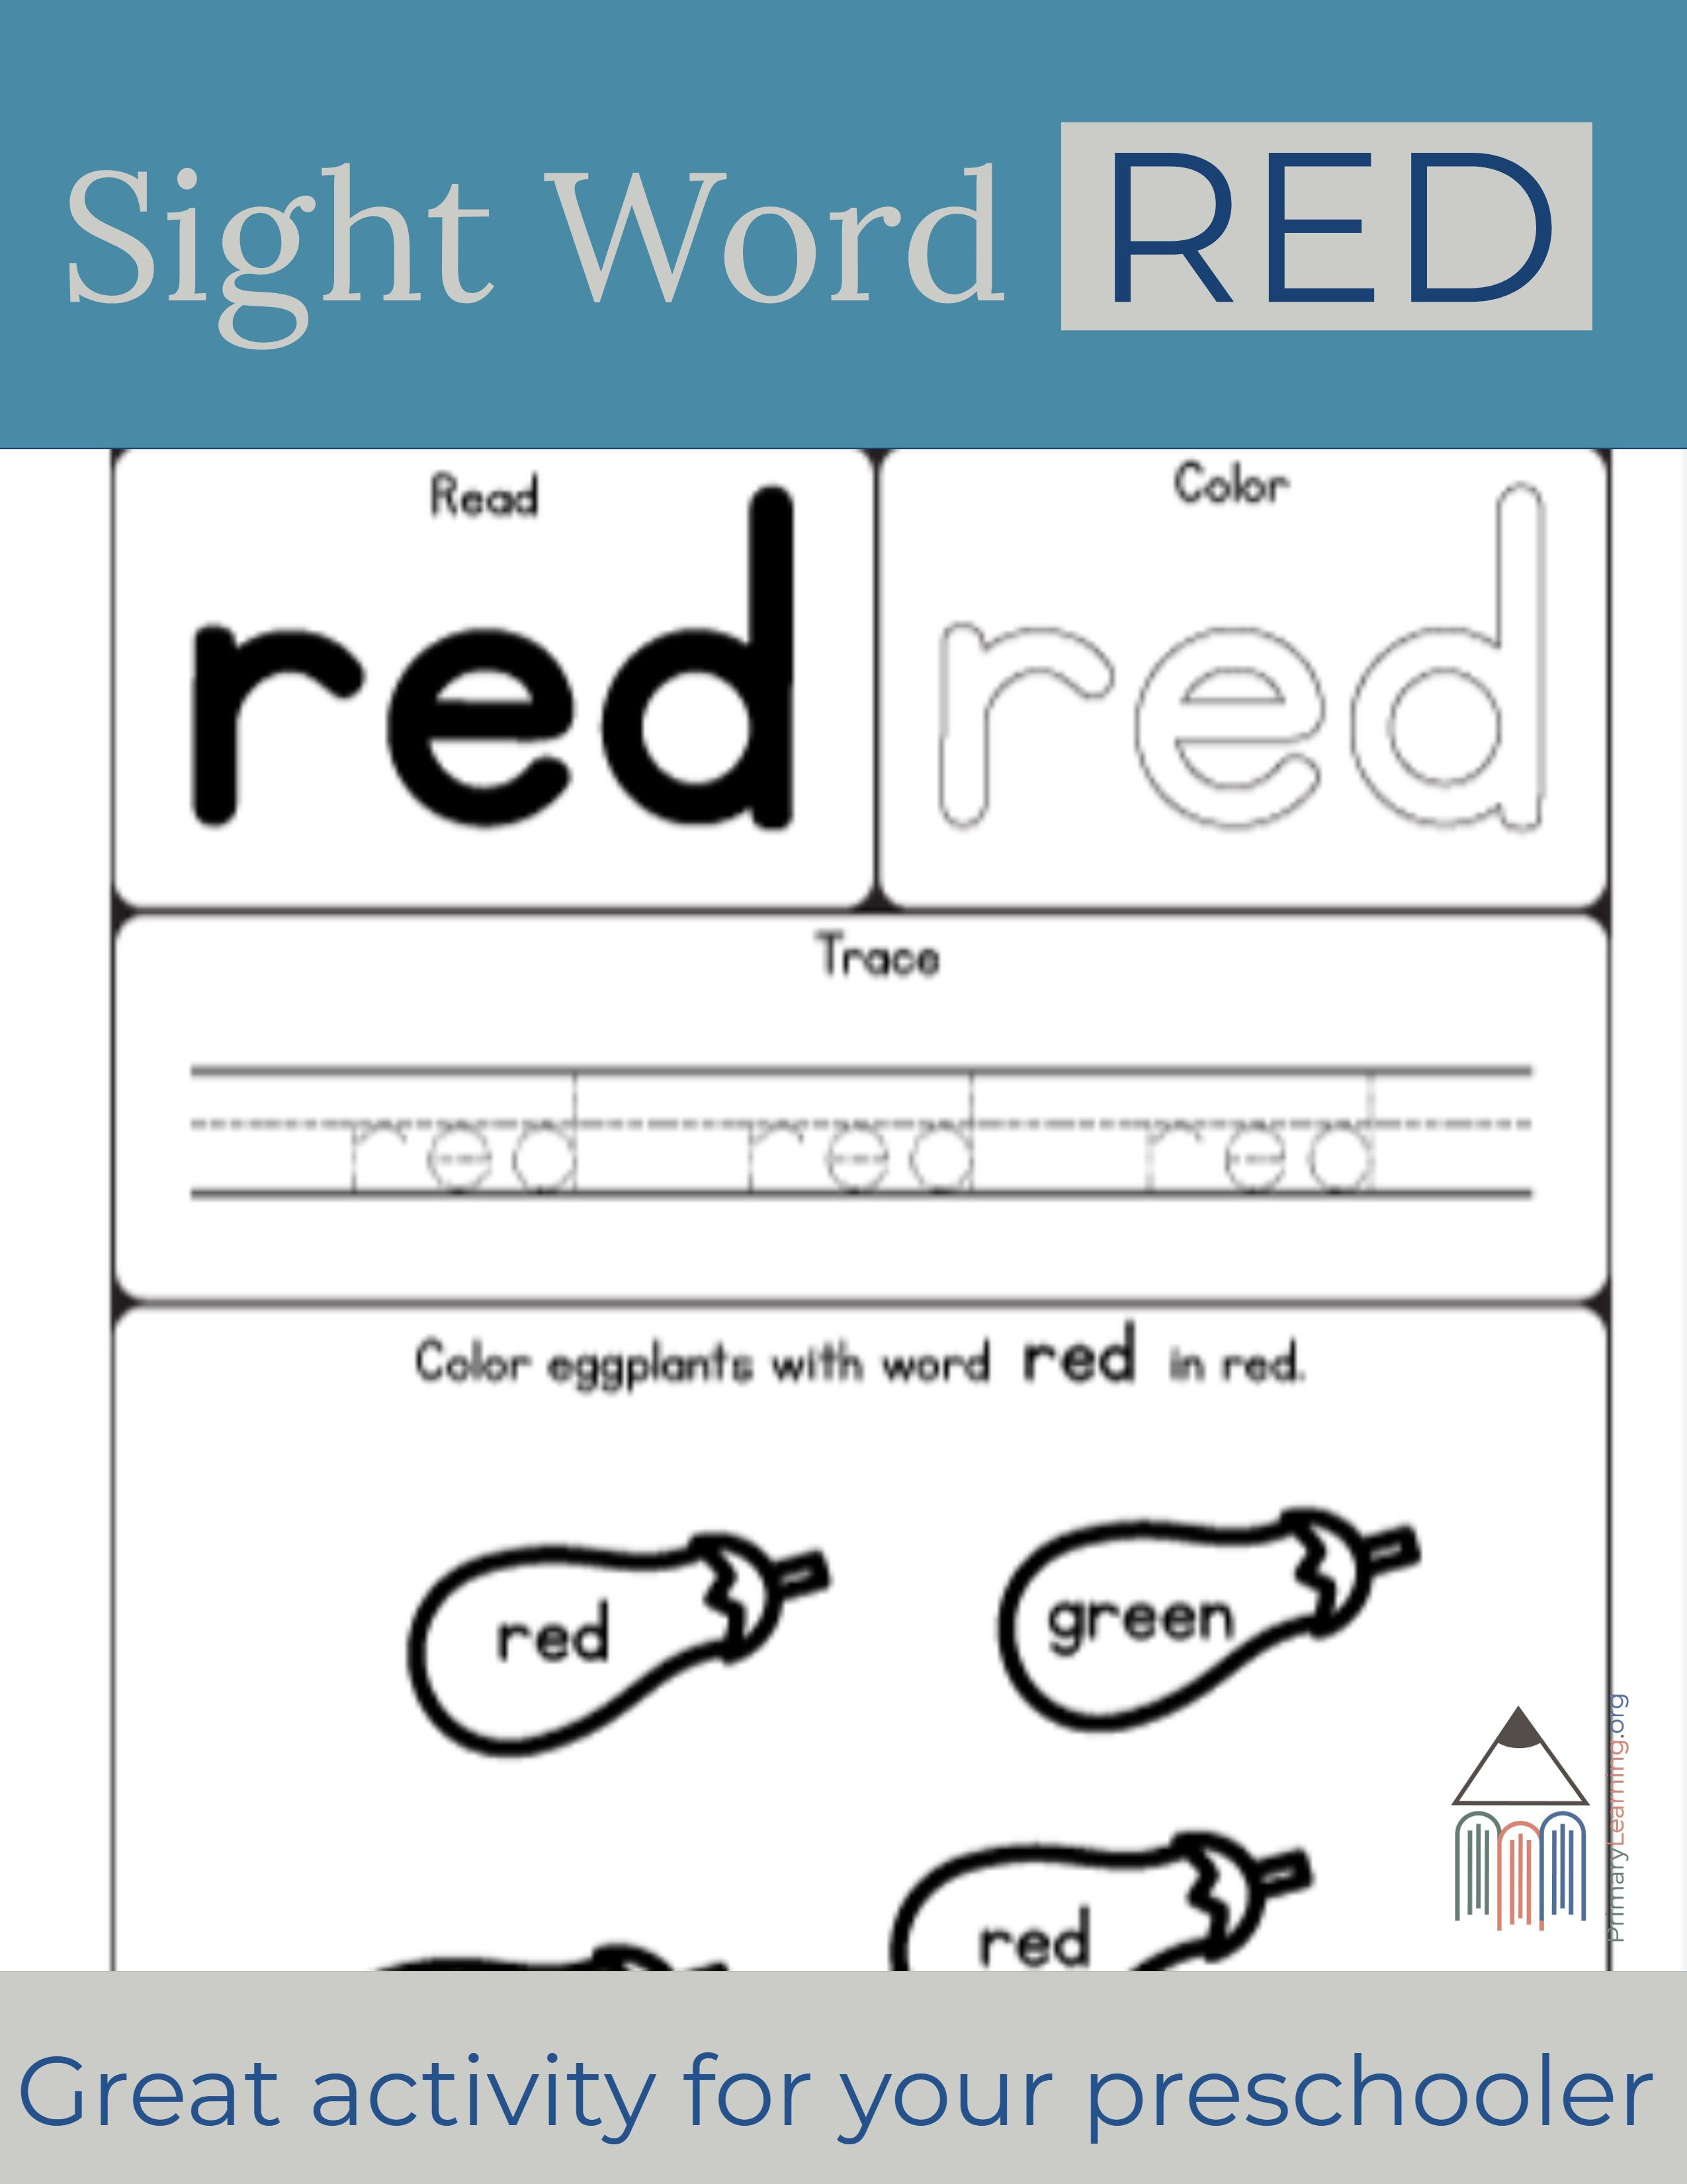 Sight Word Red Worksheet